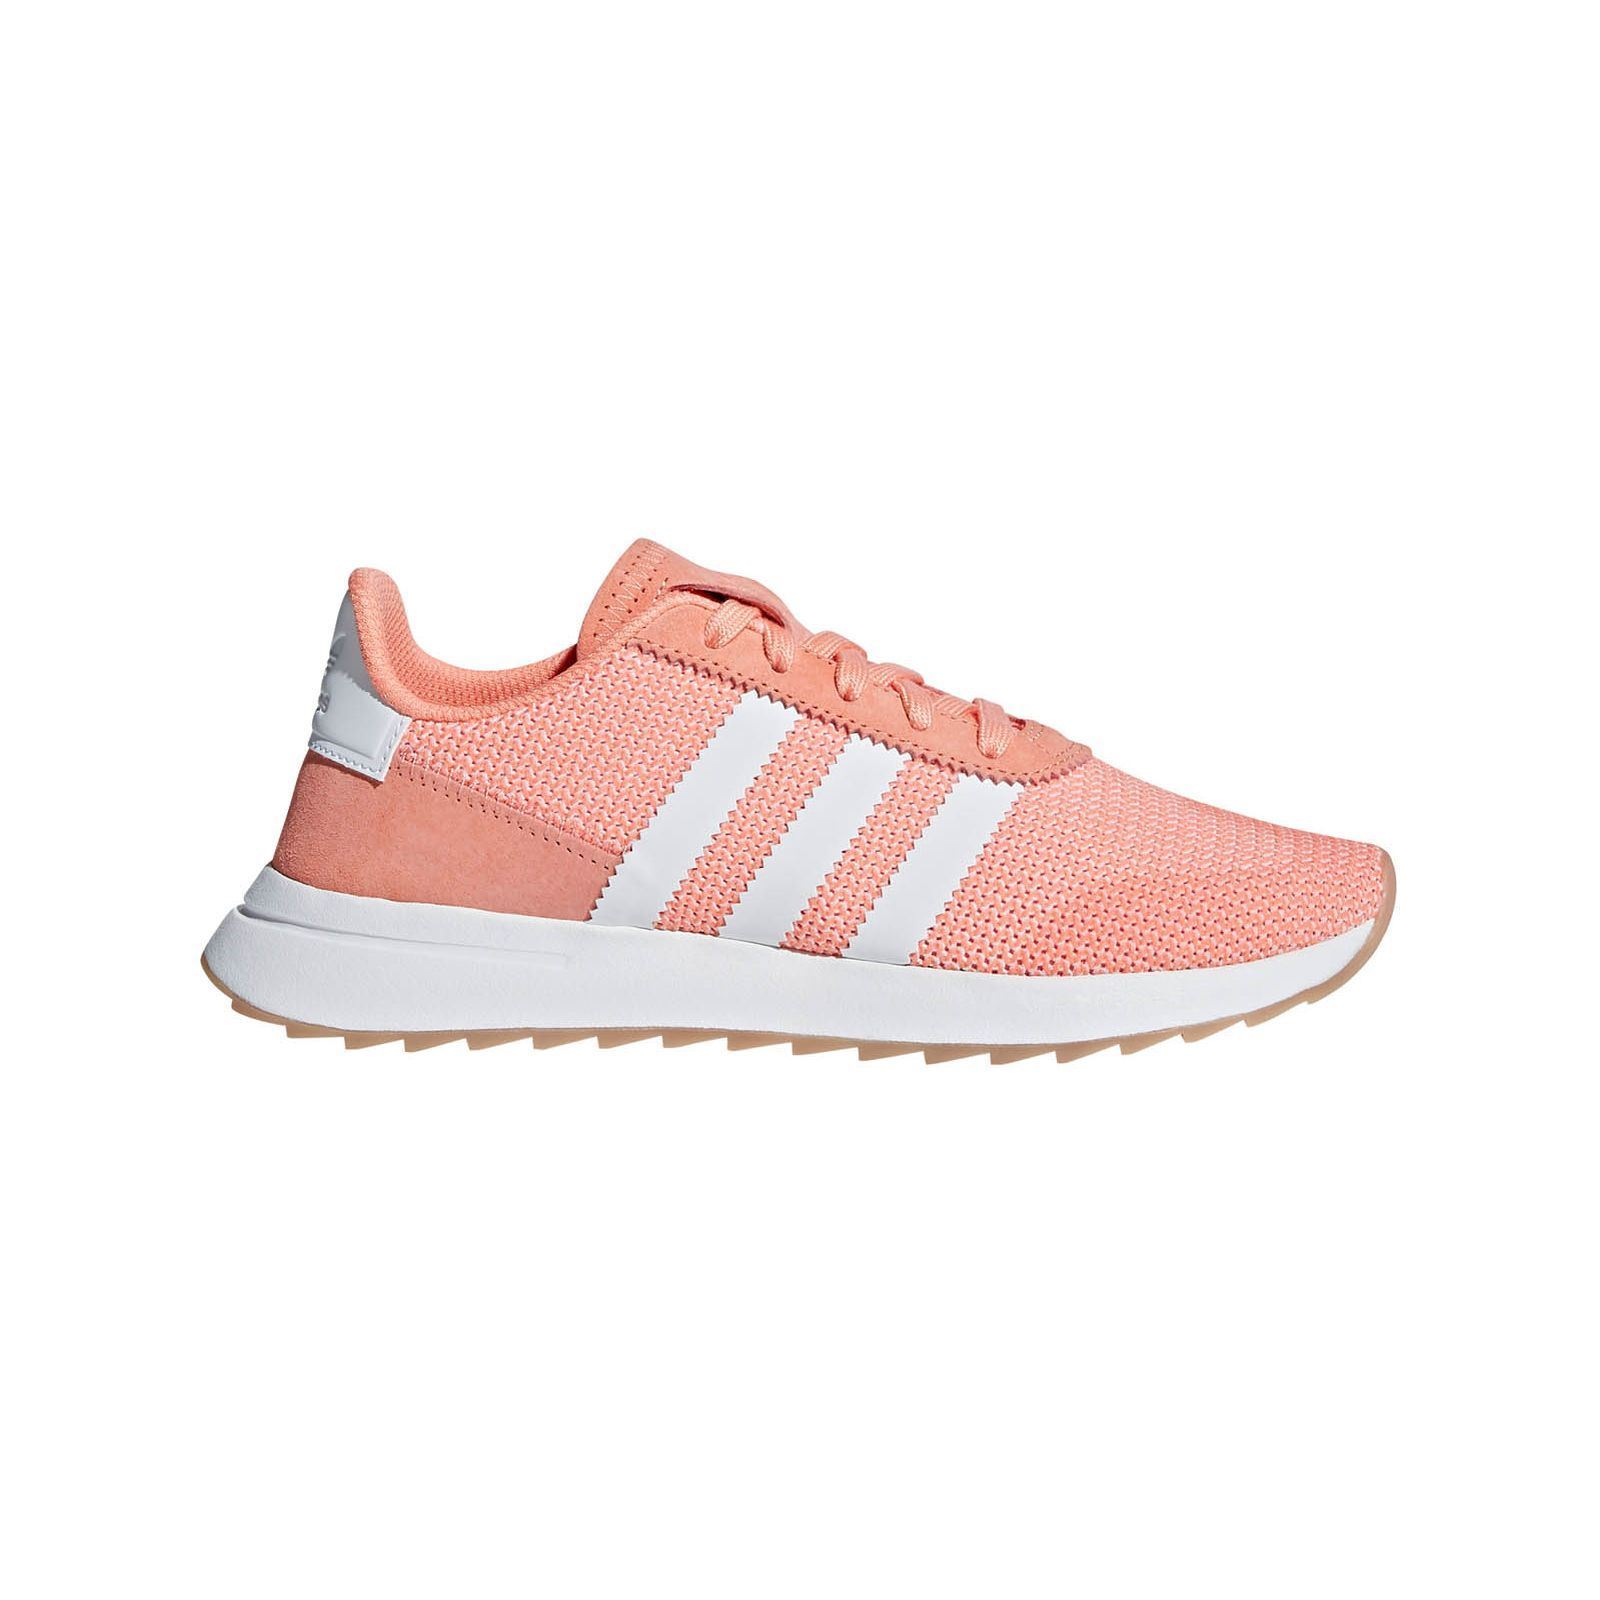 Adidas Originals Flb_Runner - Baskets - rose  Marque frappée sur la languette - application siglée au dos